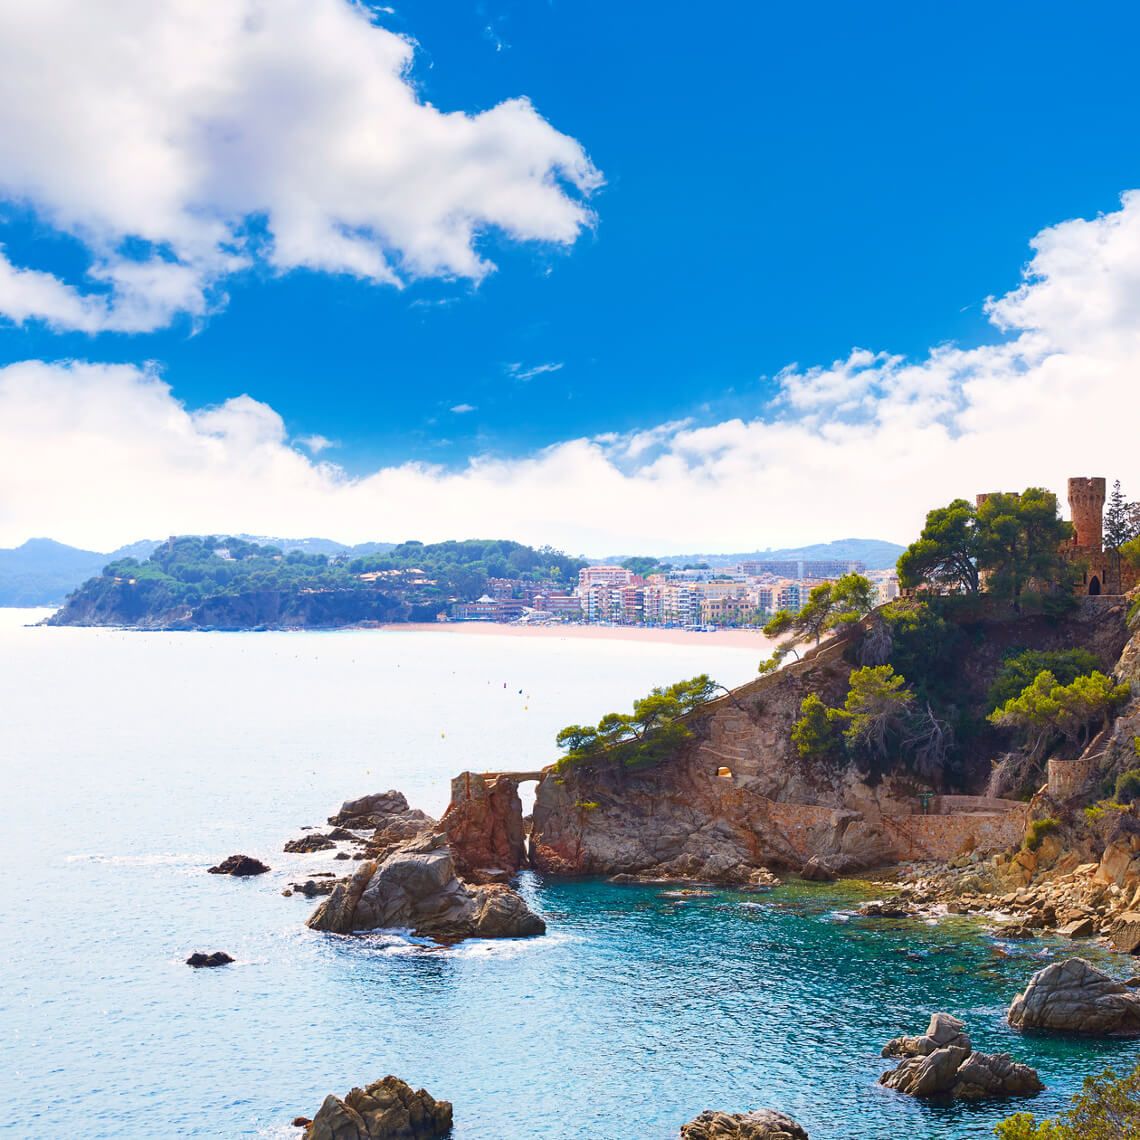 Inexpensive long-distance bus trips to Spain | FlixBus